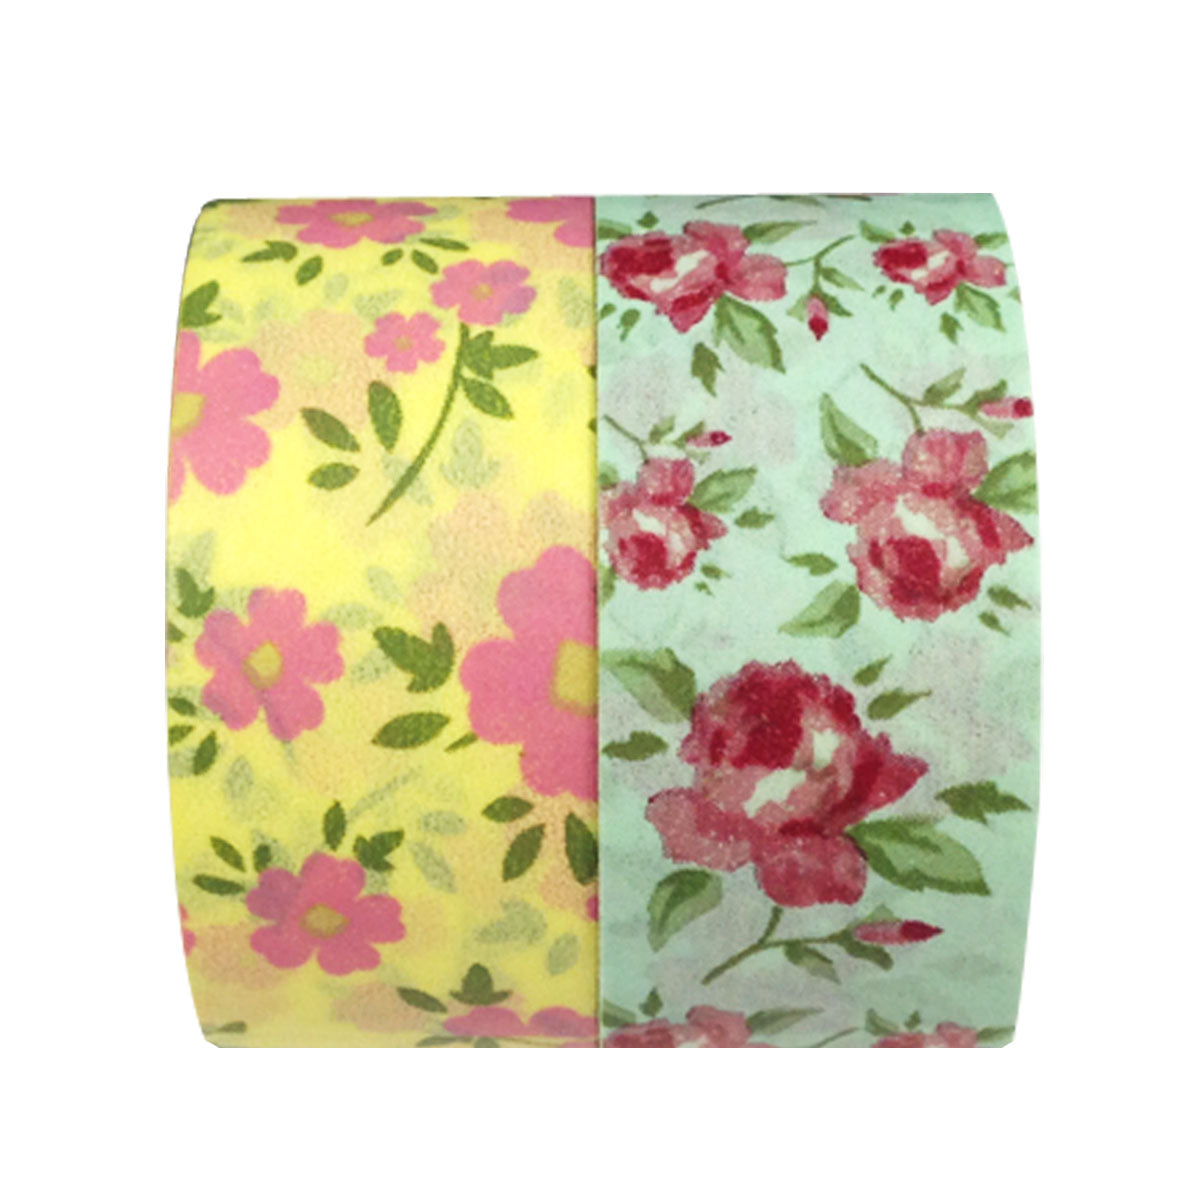 Wrapables Sweet Bouquet Washi Masking Tape (set of 2), 10M L x 20mm W